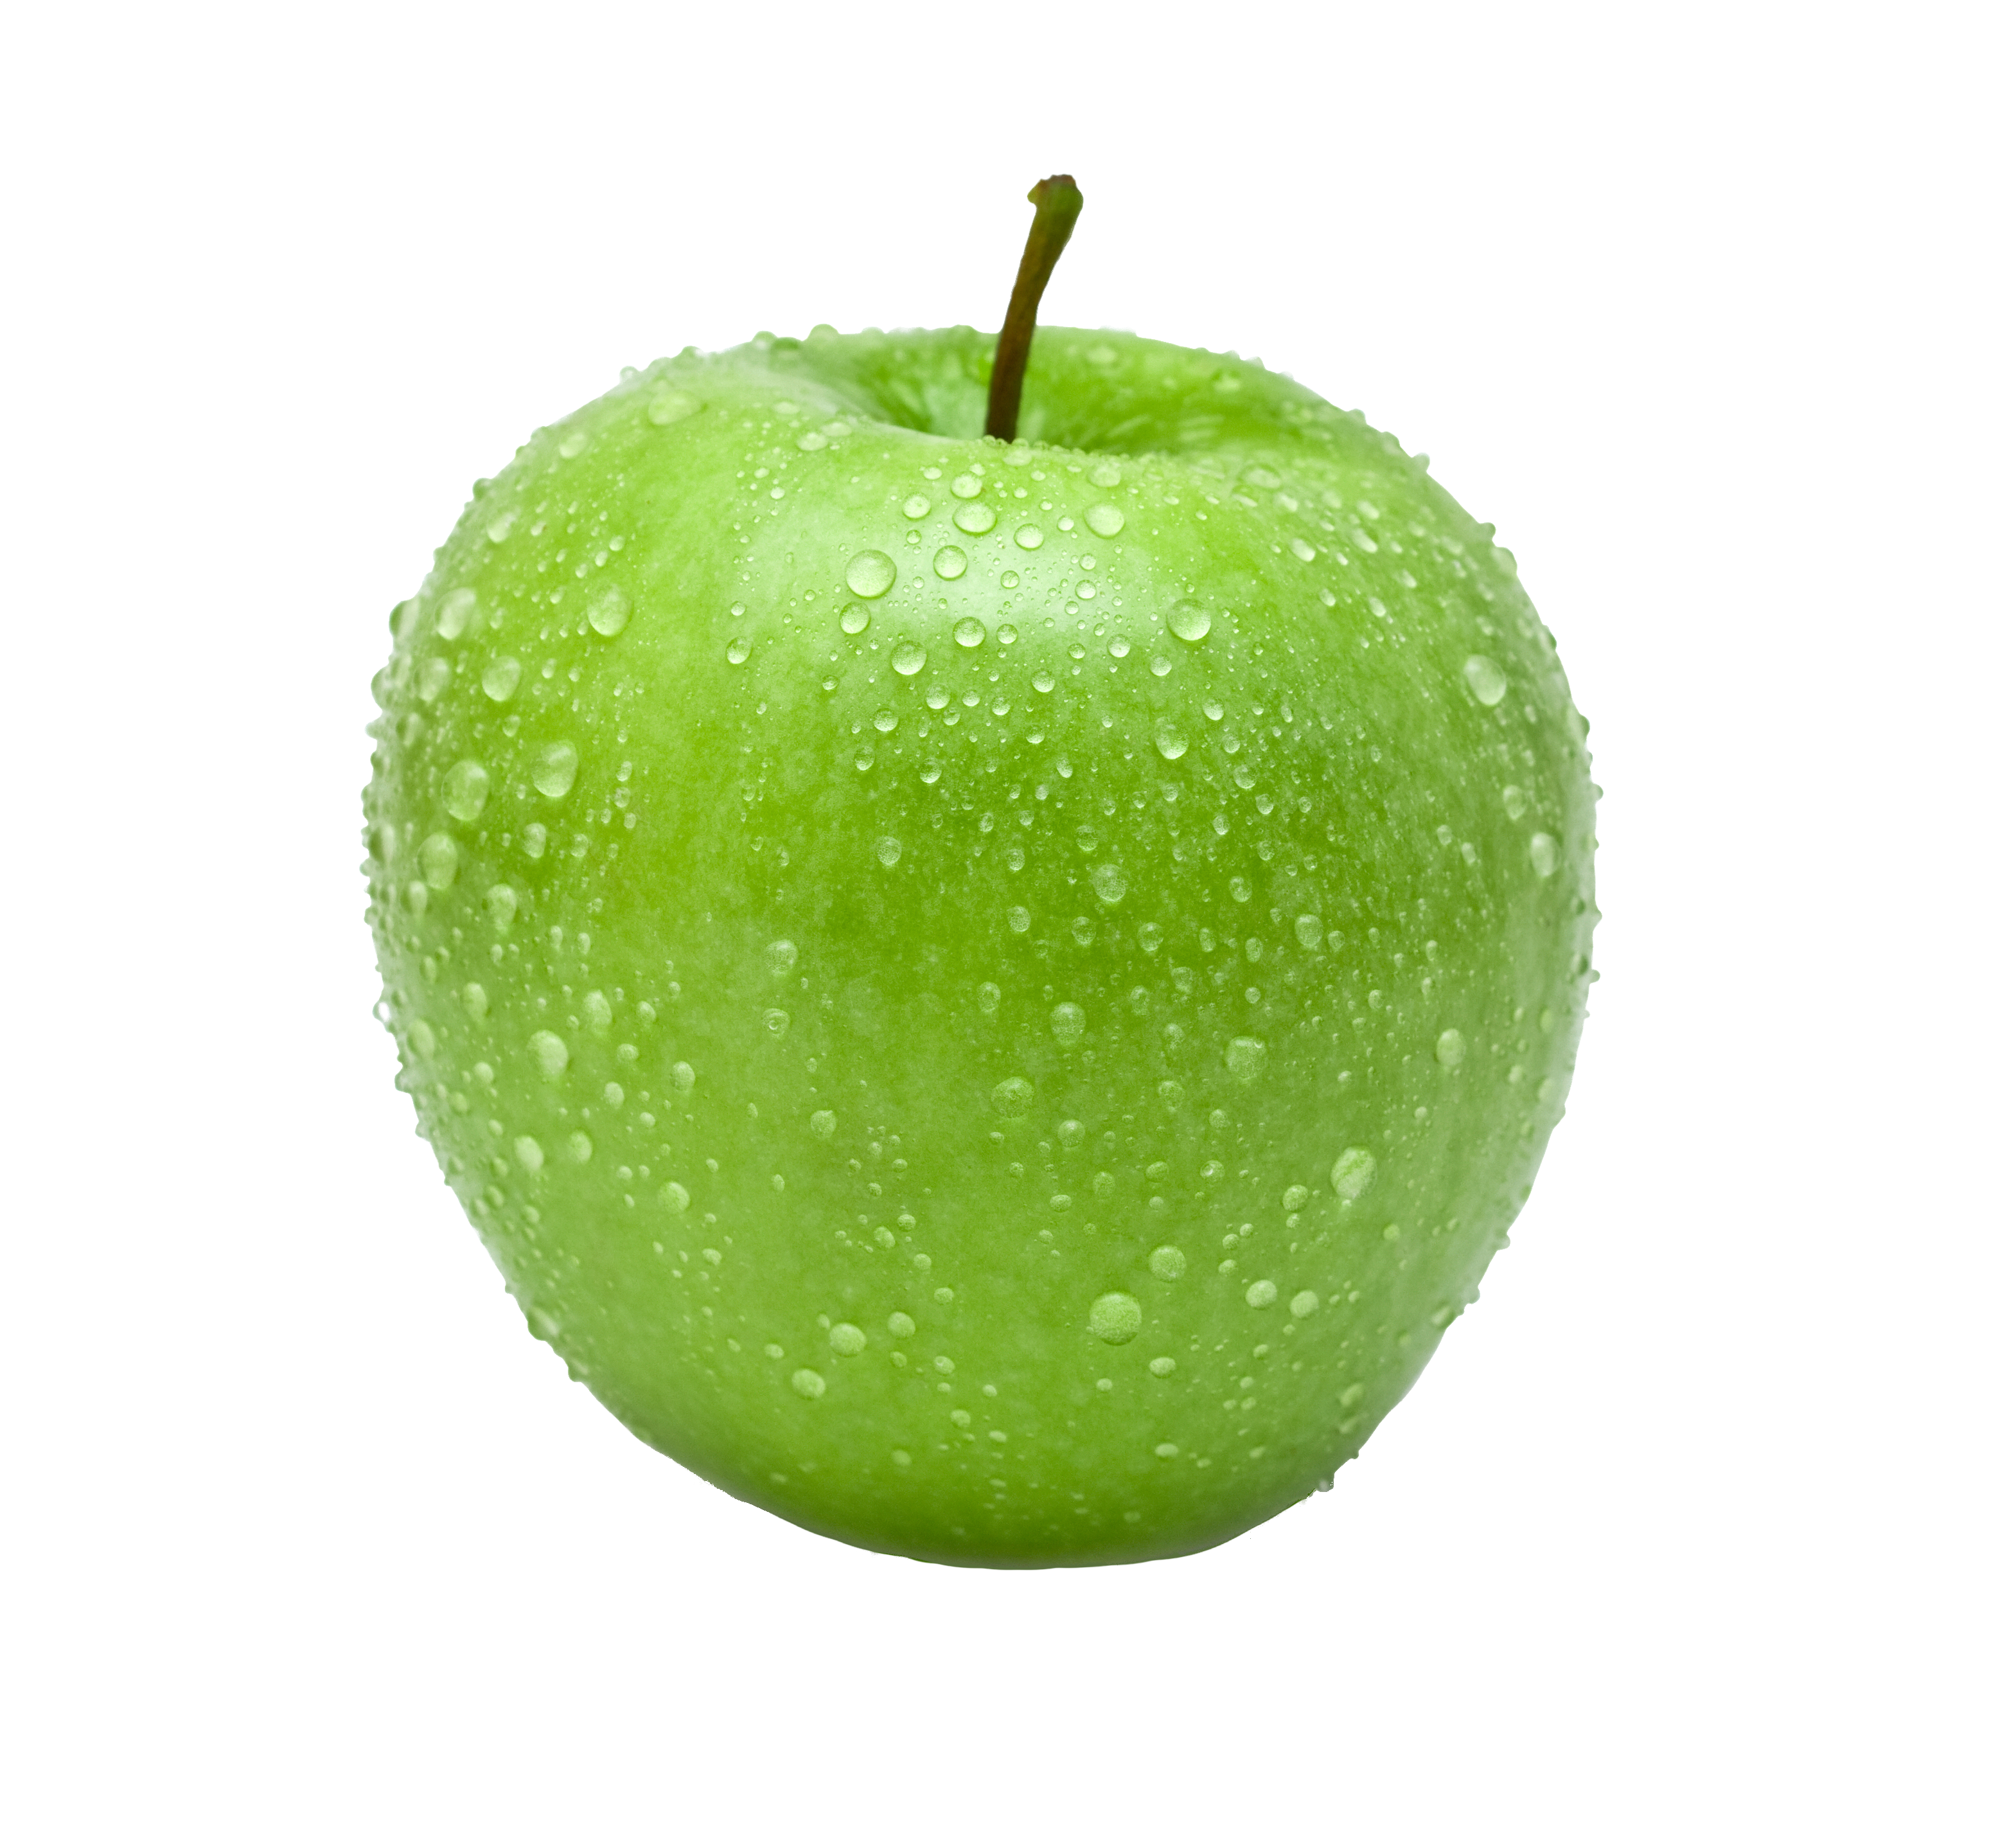 Green apple png. S image purepng free